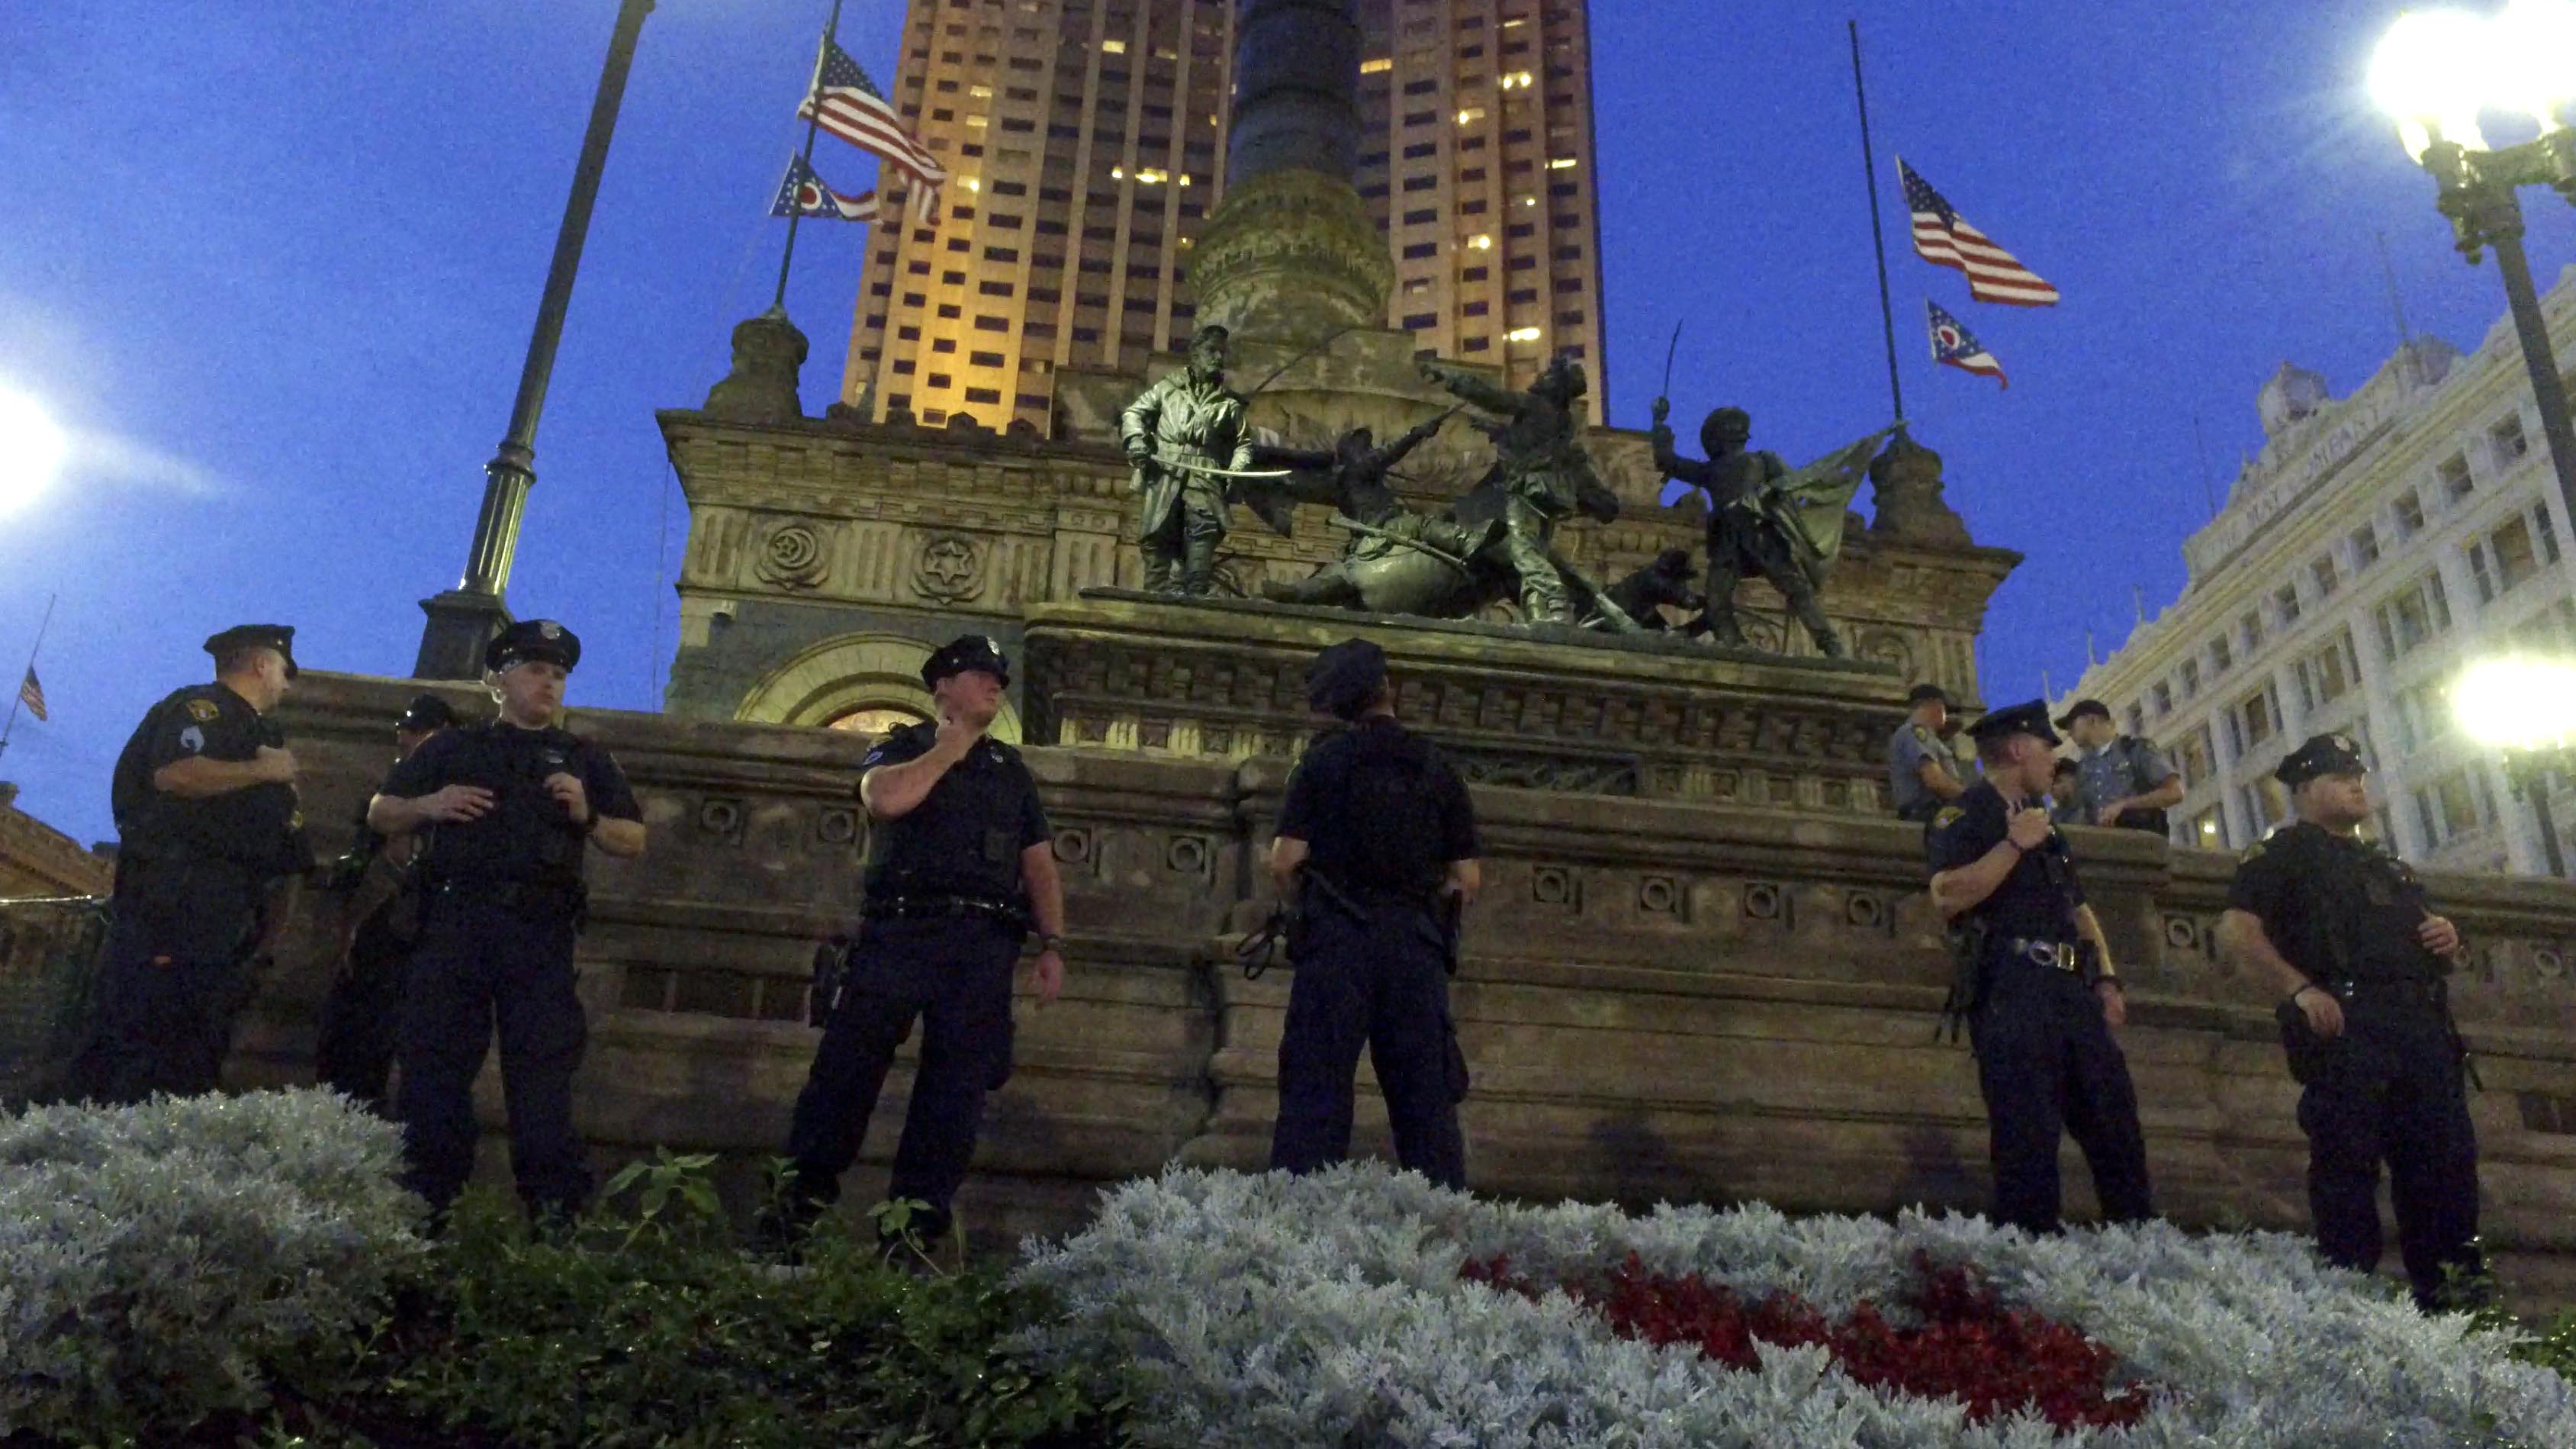 Police watch over the public square during protests on Thursday, July 21, 2016 in Cleveland.